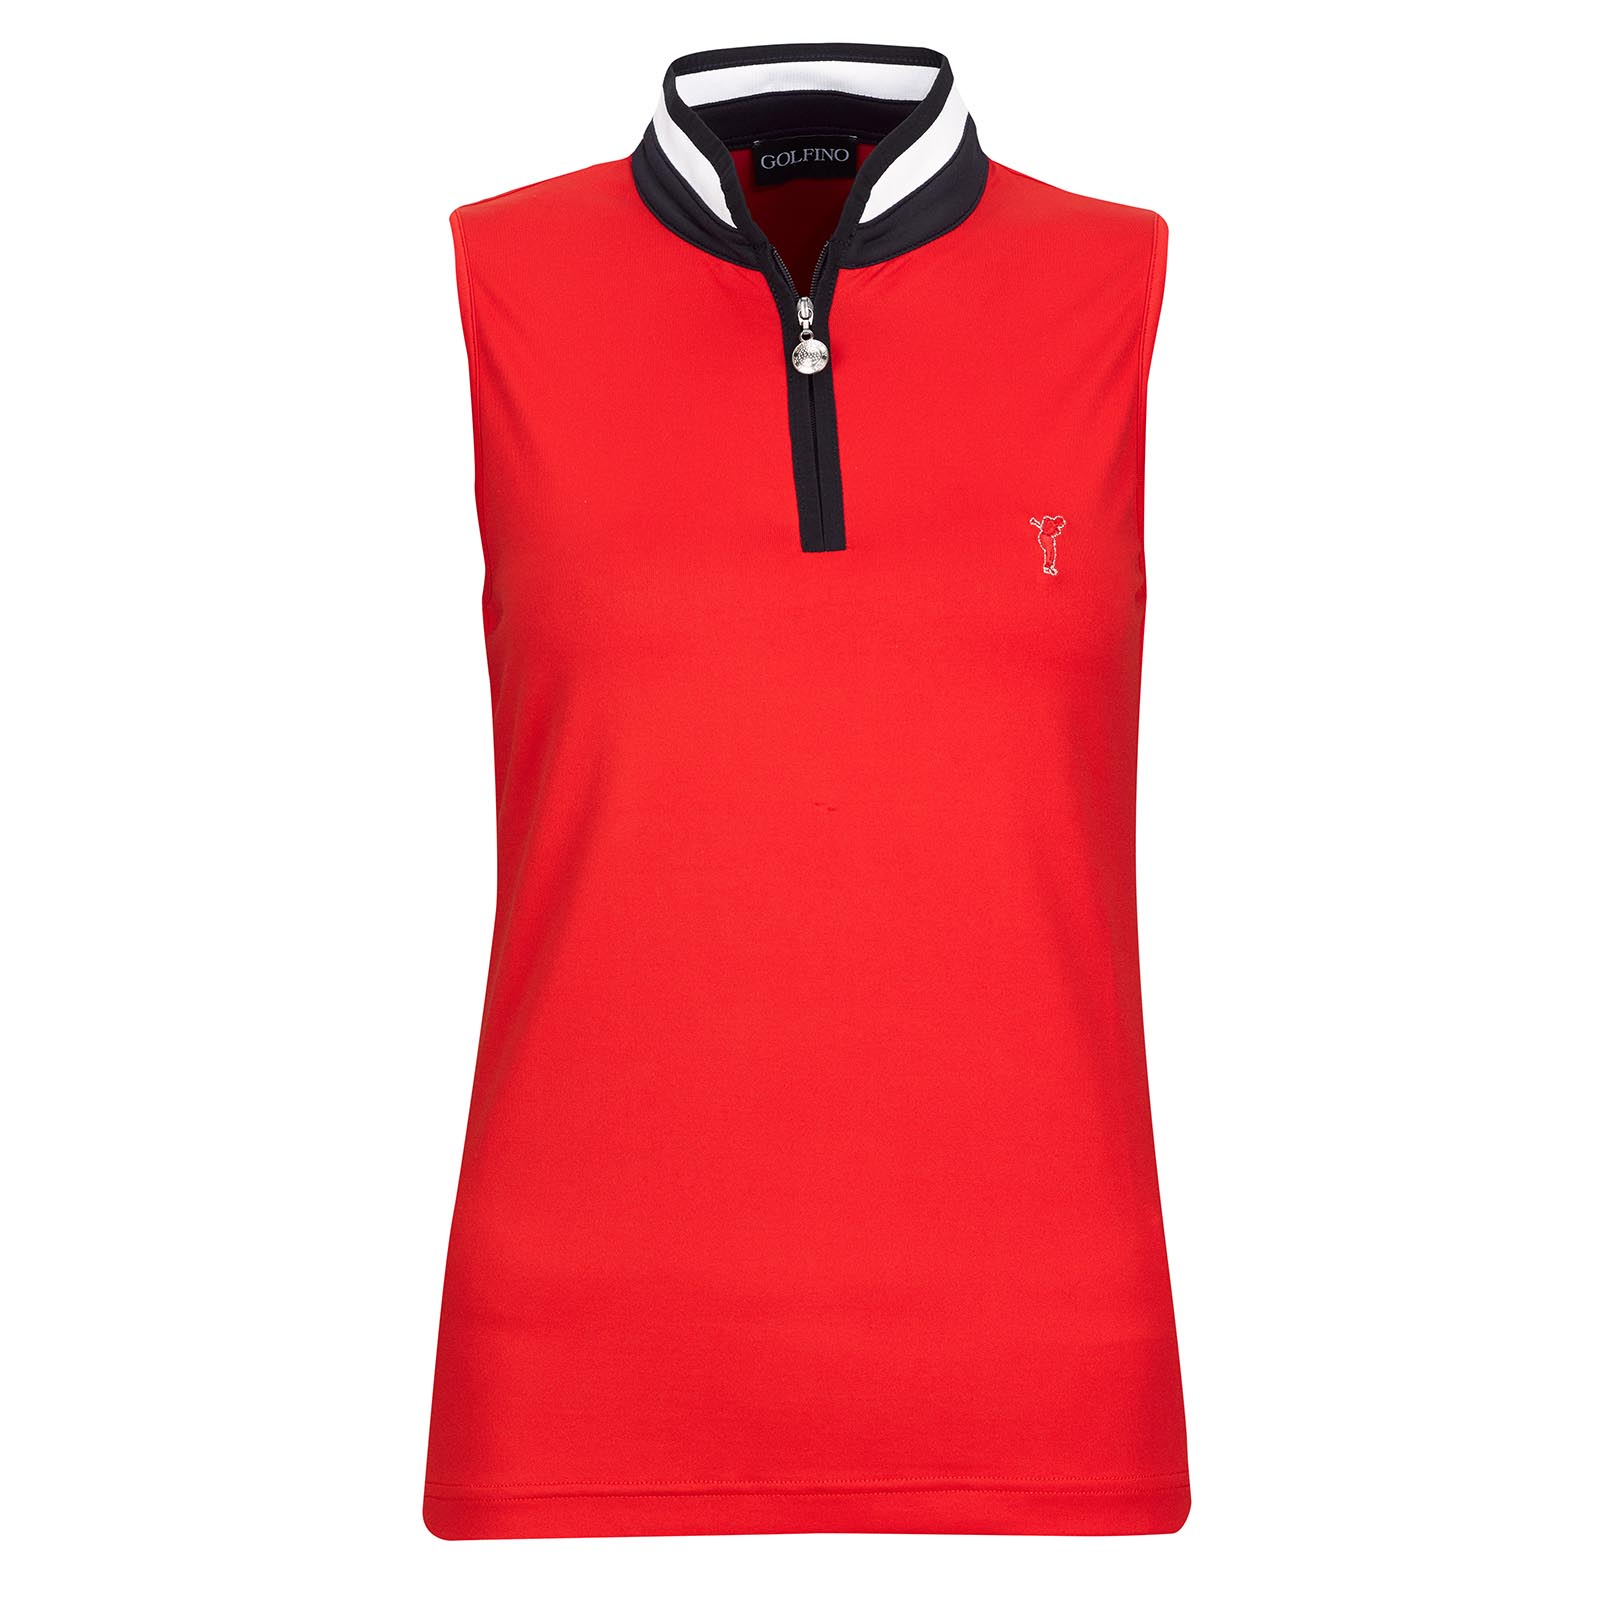 Ladies' sleeveless functional golf troyer with Moisture Management